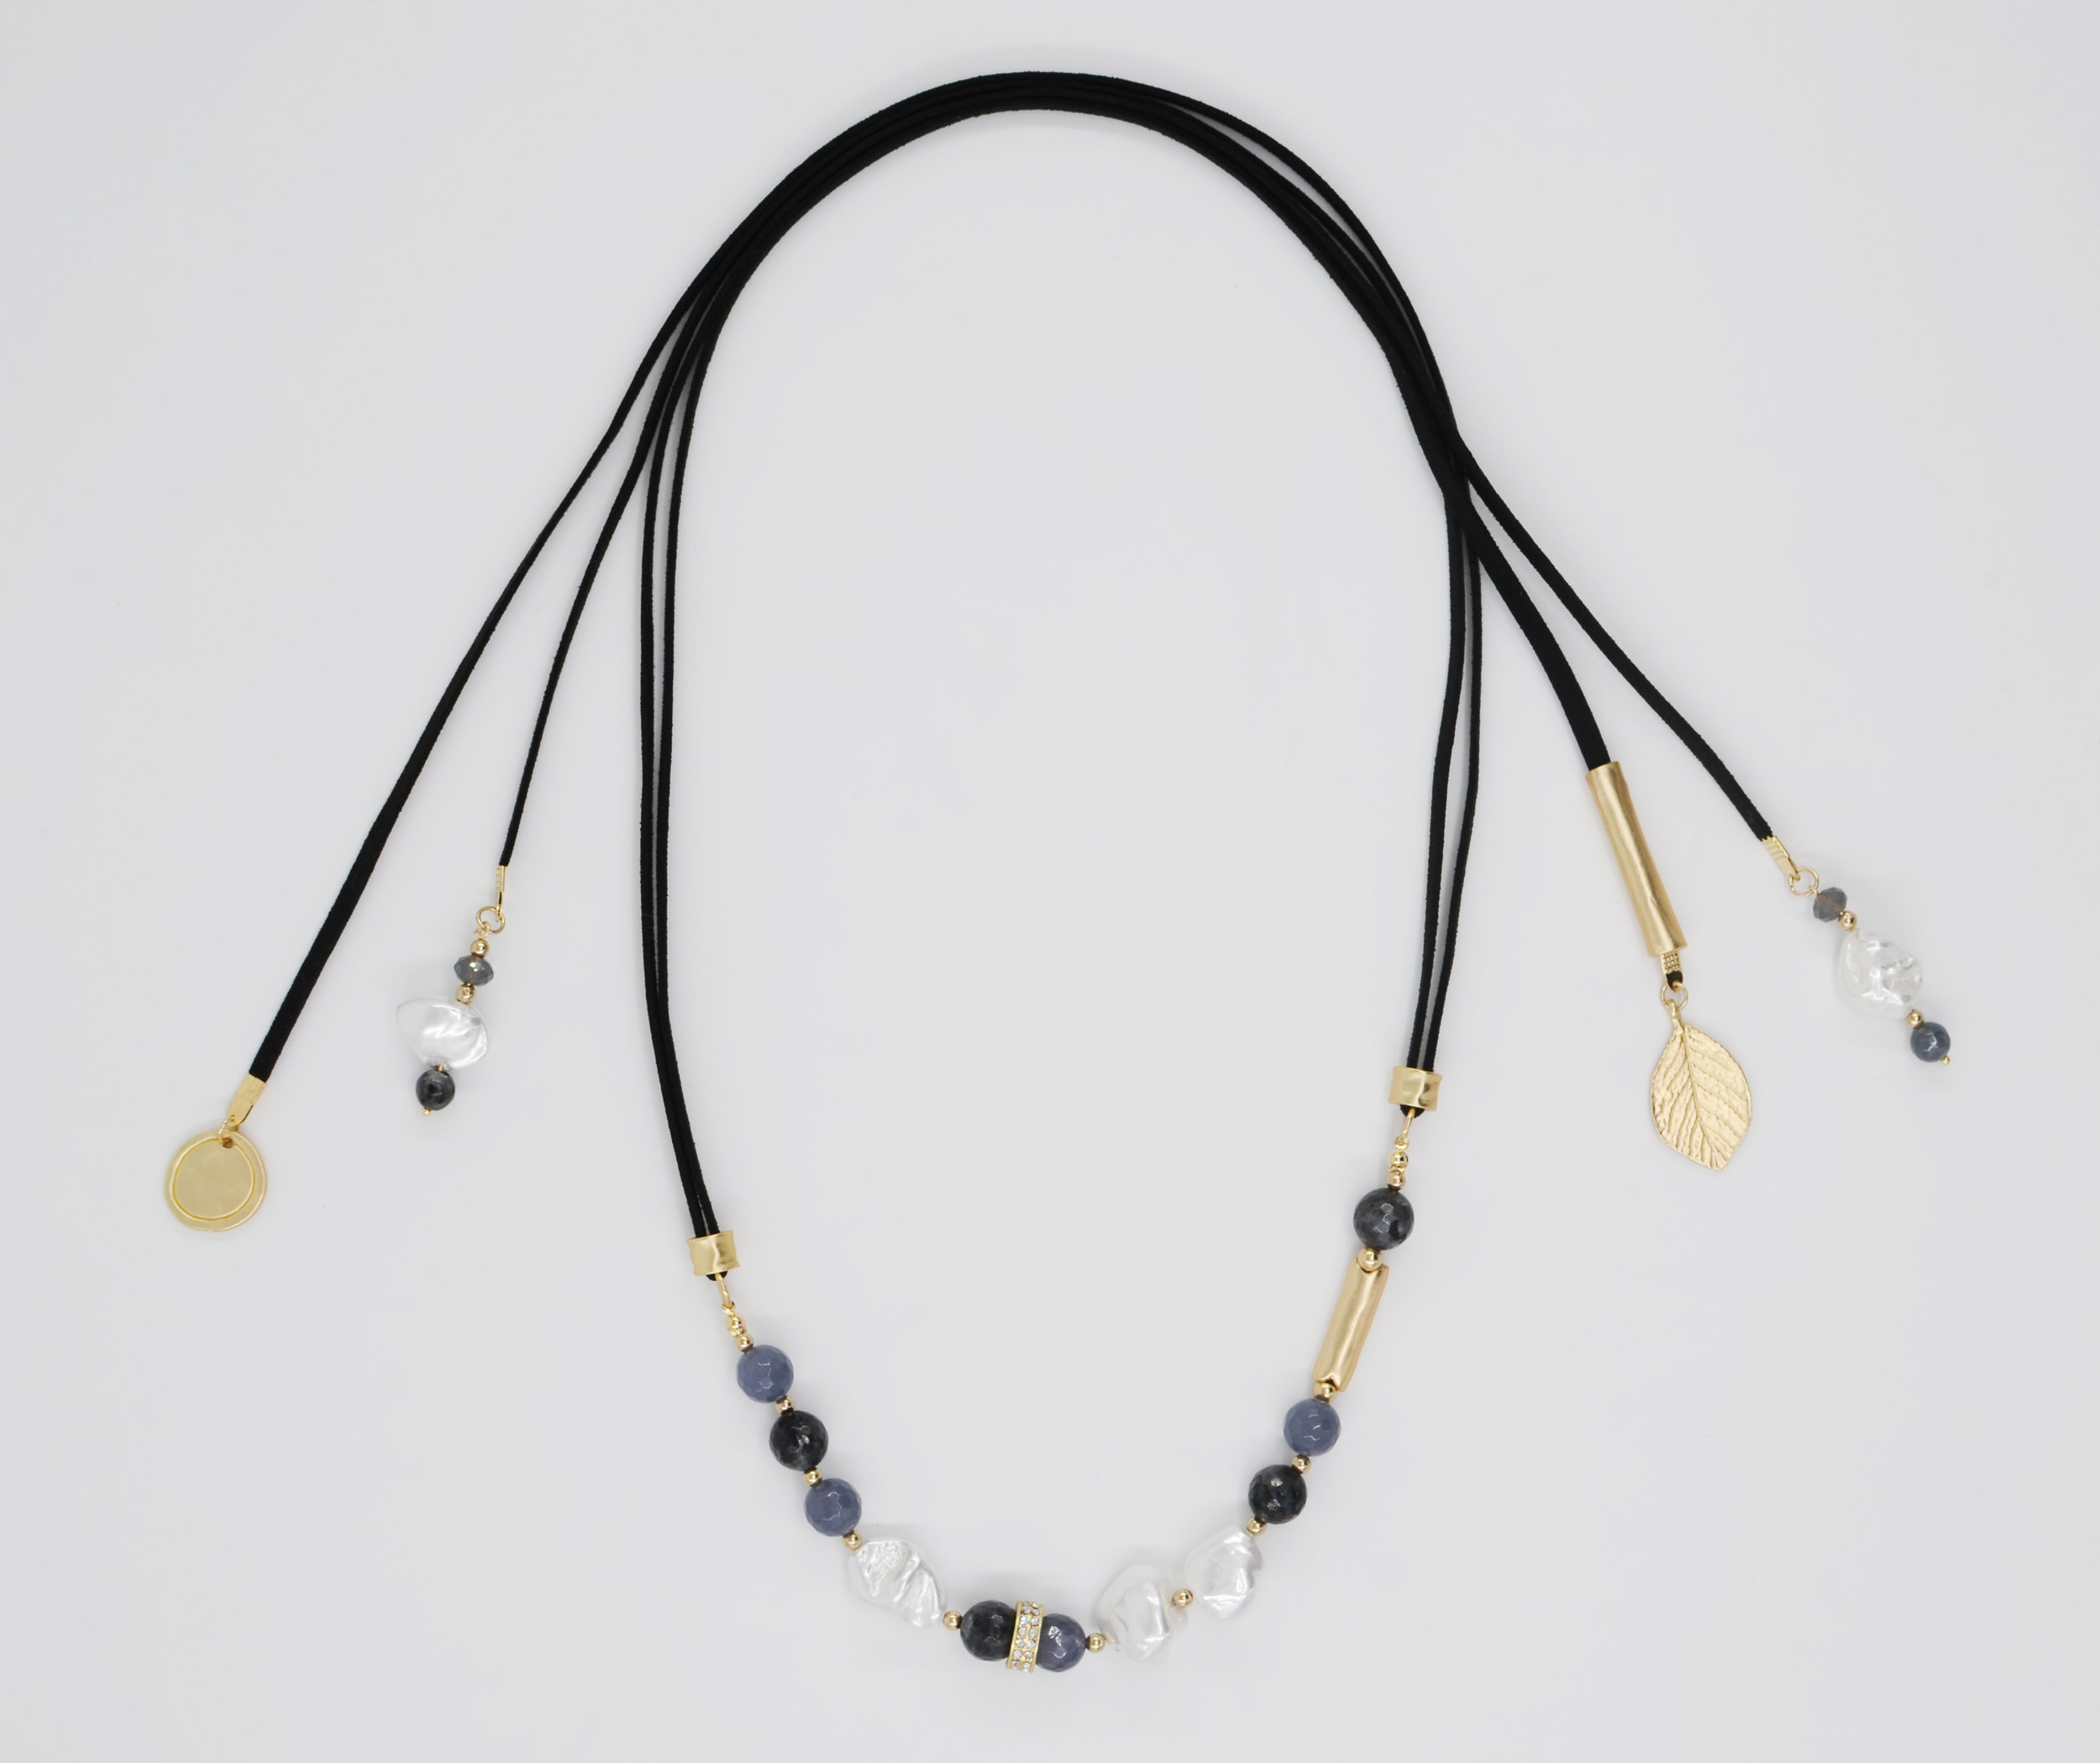 LORETO    Suede, Dust Pearls, Matt Gold Plated Brass, Natural Stones, Length 64 CM, Stone size & Dust Pearls Approx. 1 CM